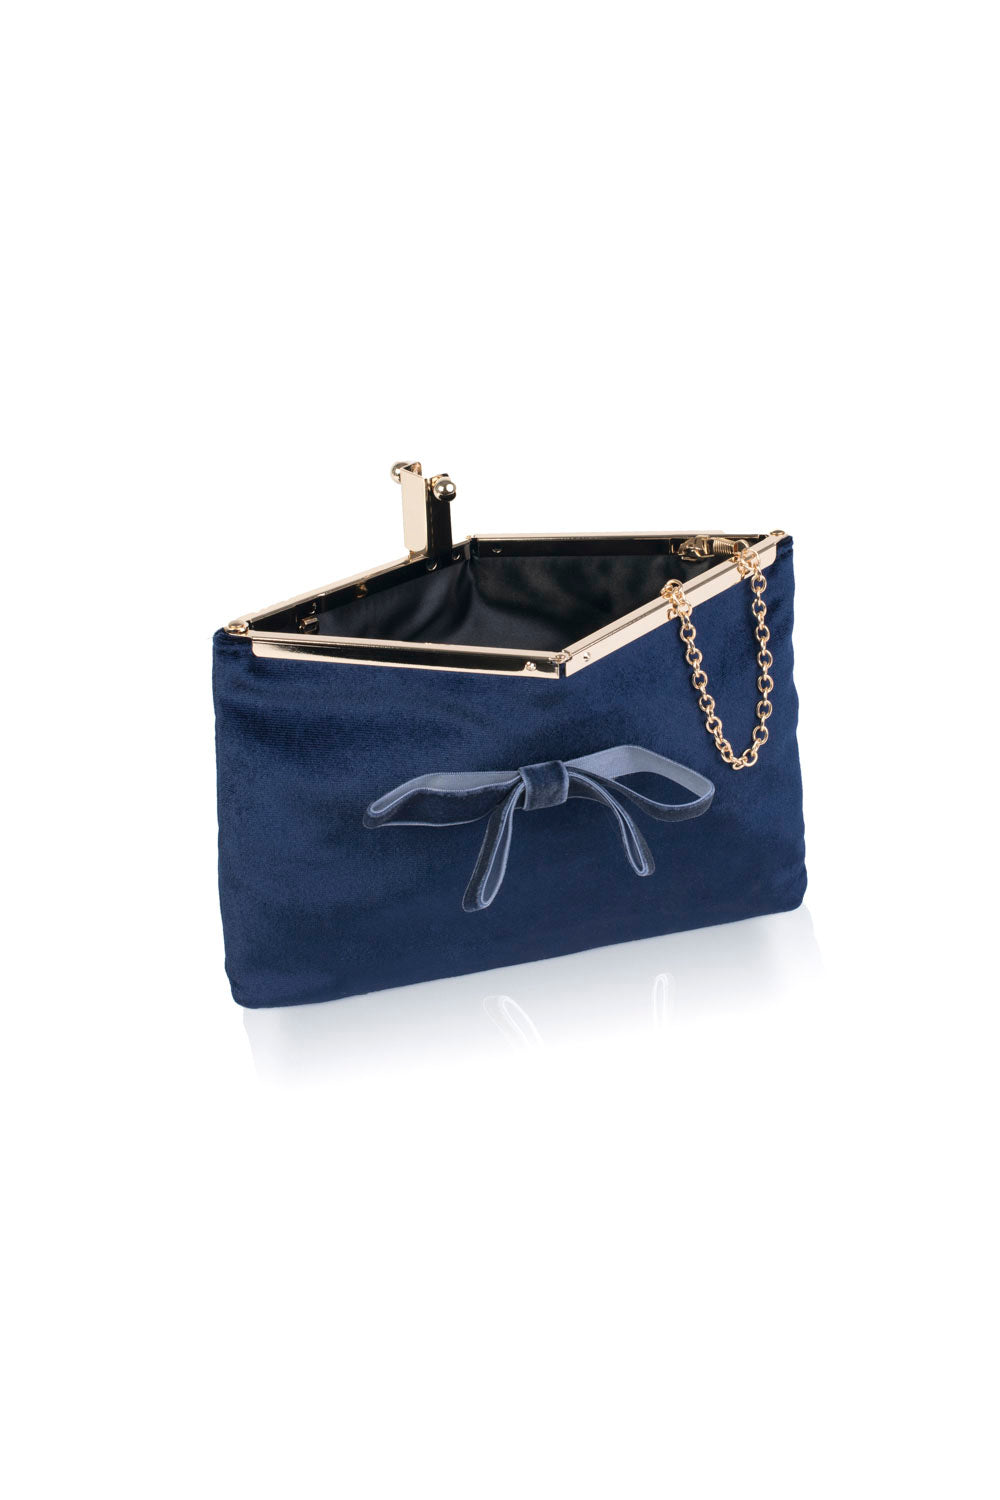 Terc bag. Vintage - Navy Blue